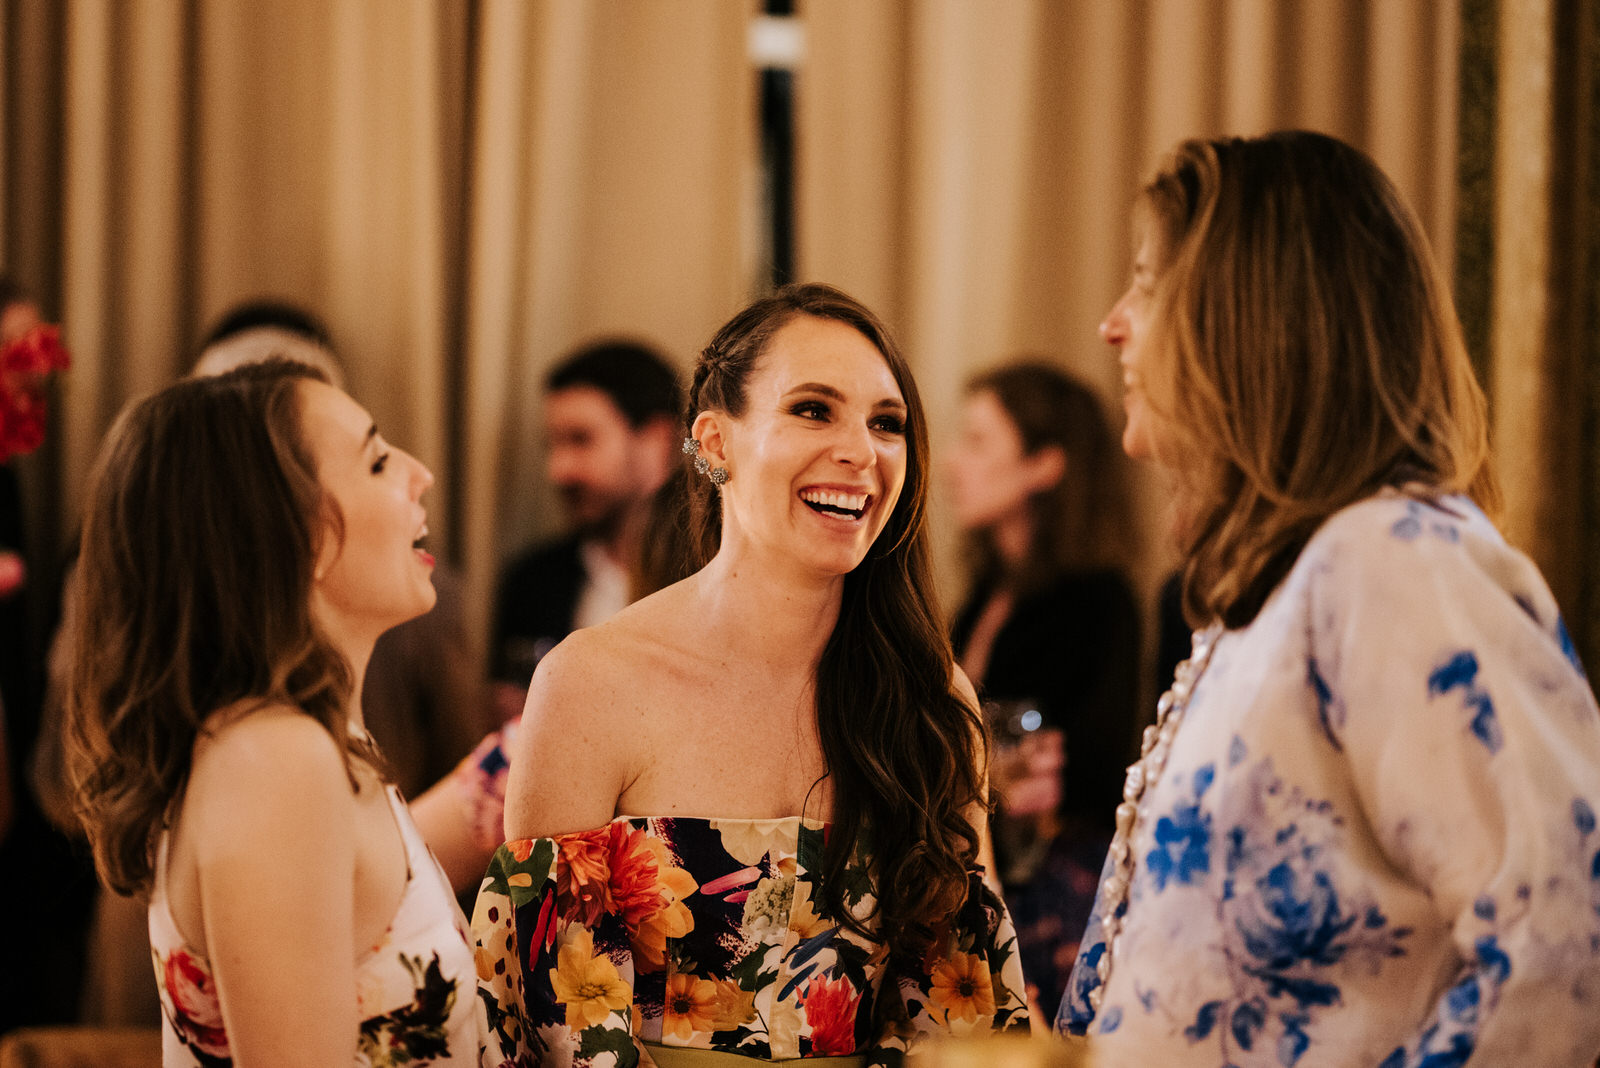 Candid photograph of groom's sisters talking to a friend and smiling